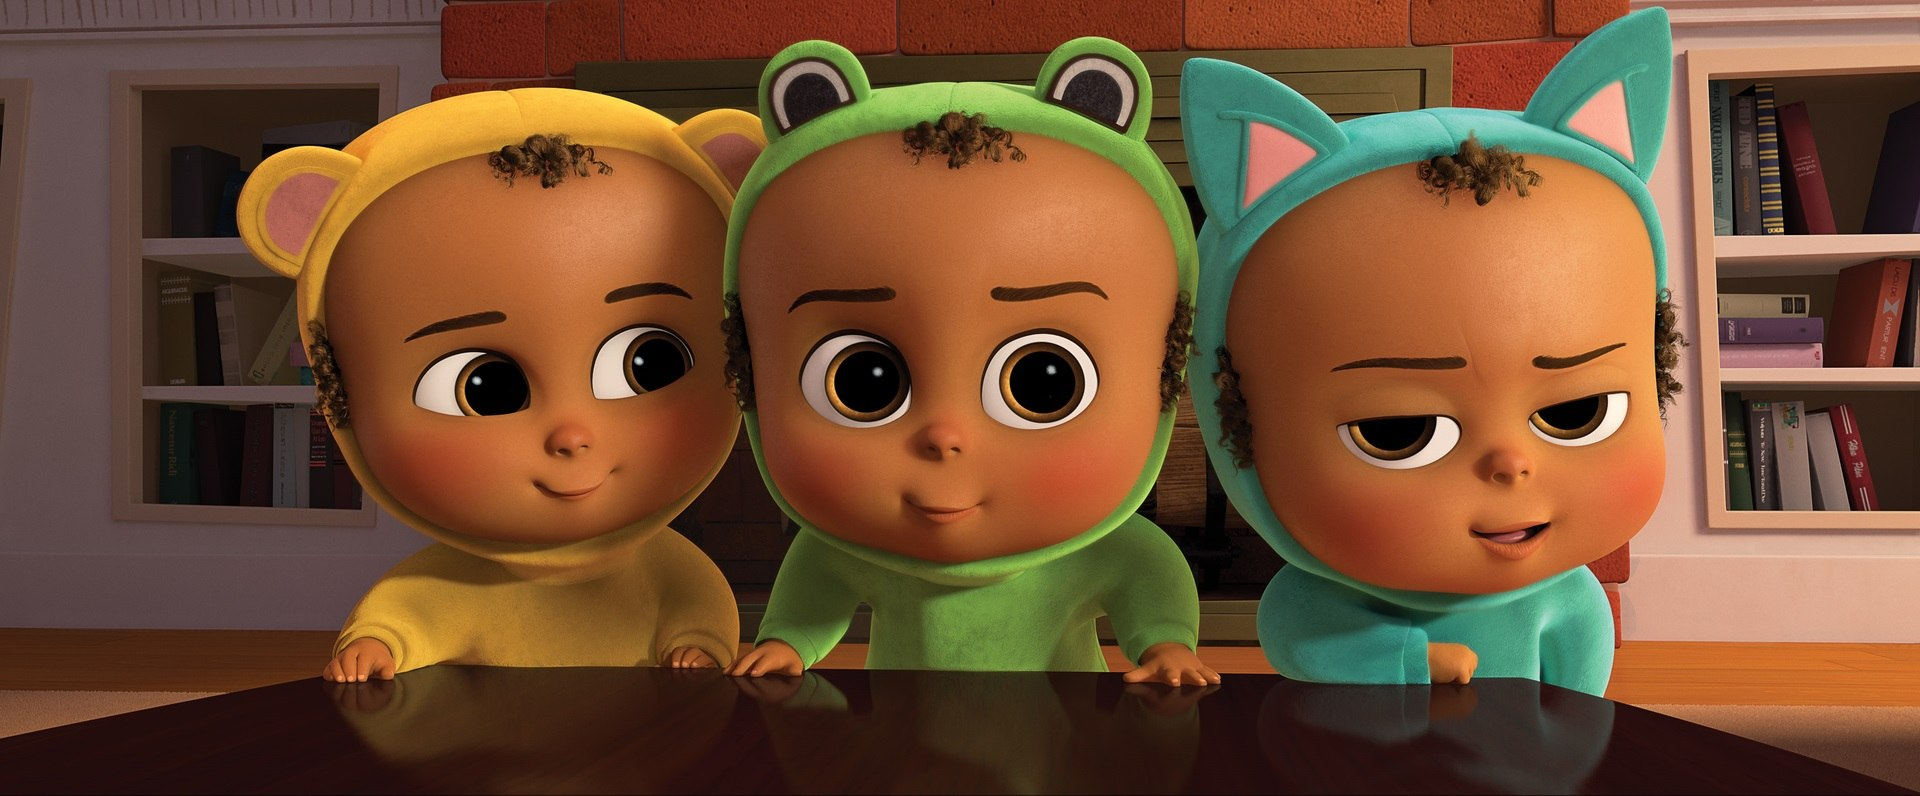 Dreamworks Gets Down To Business With The Boss Baby